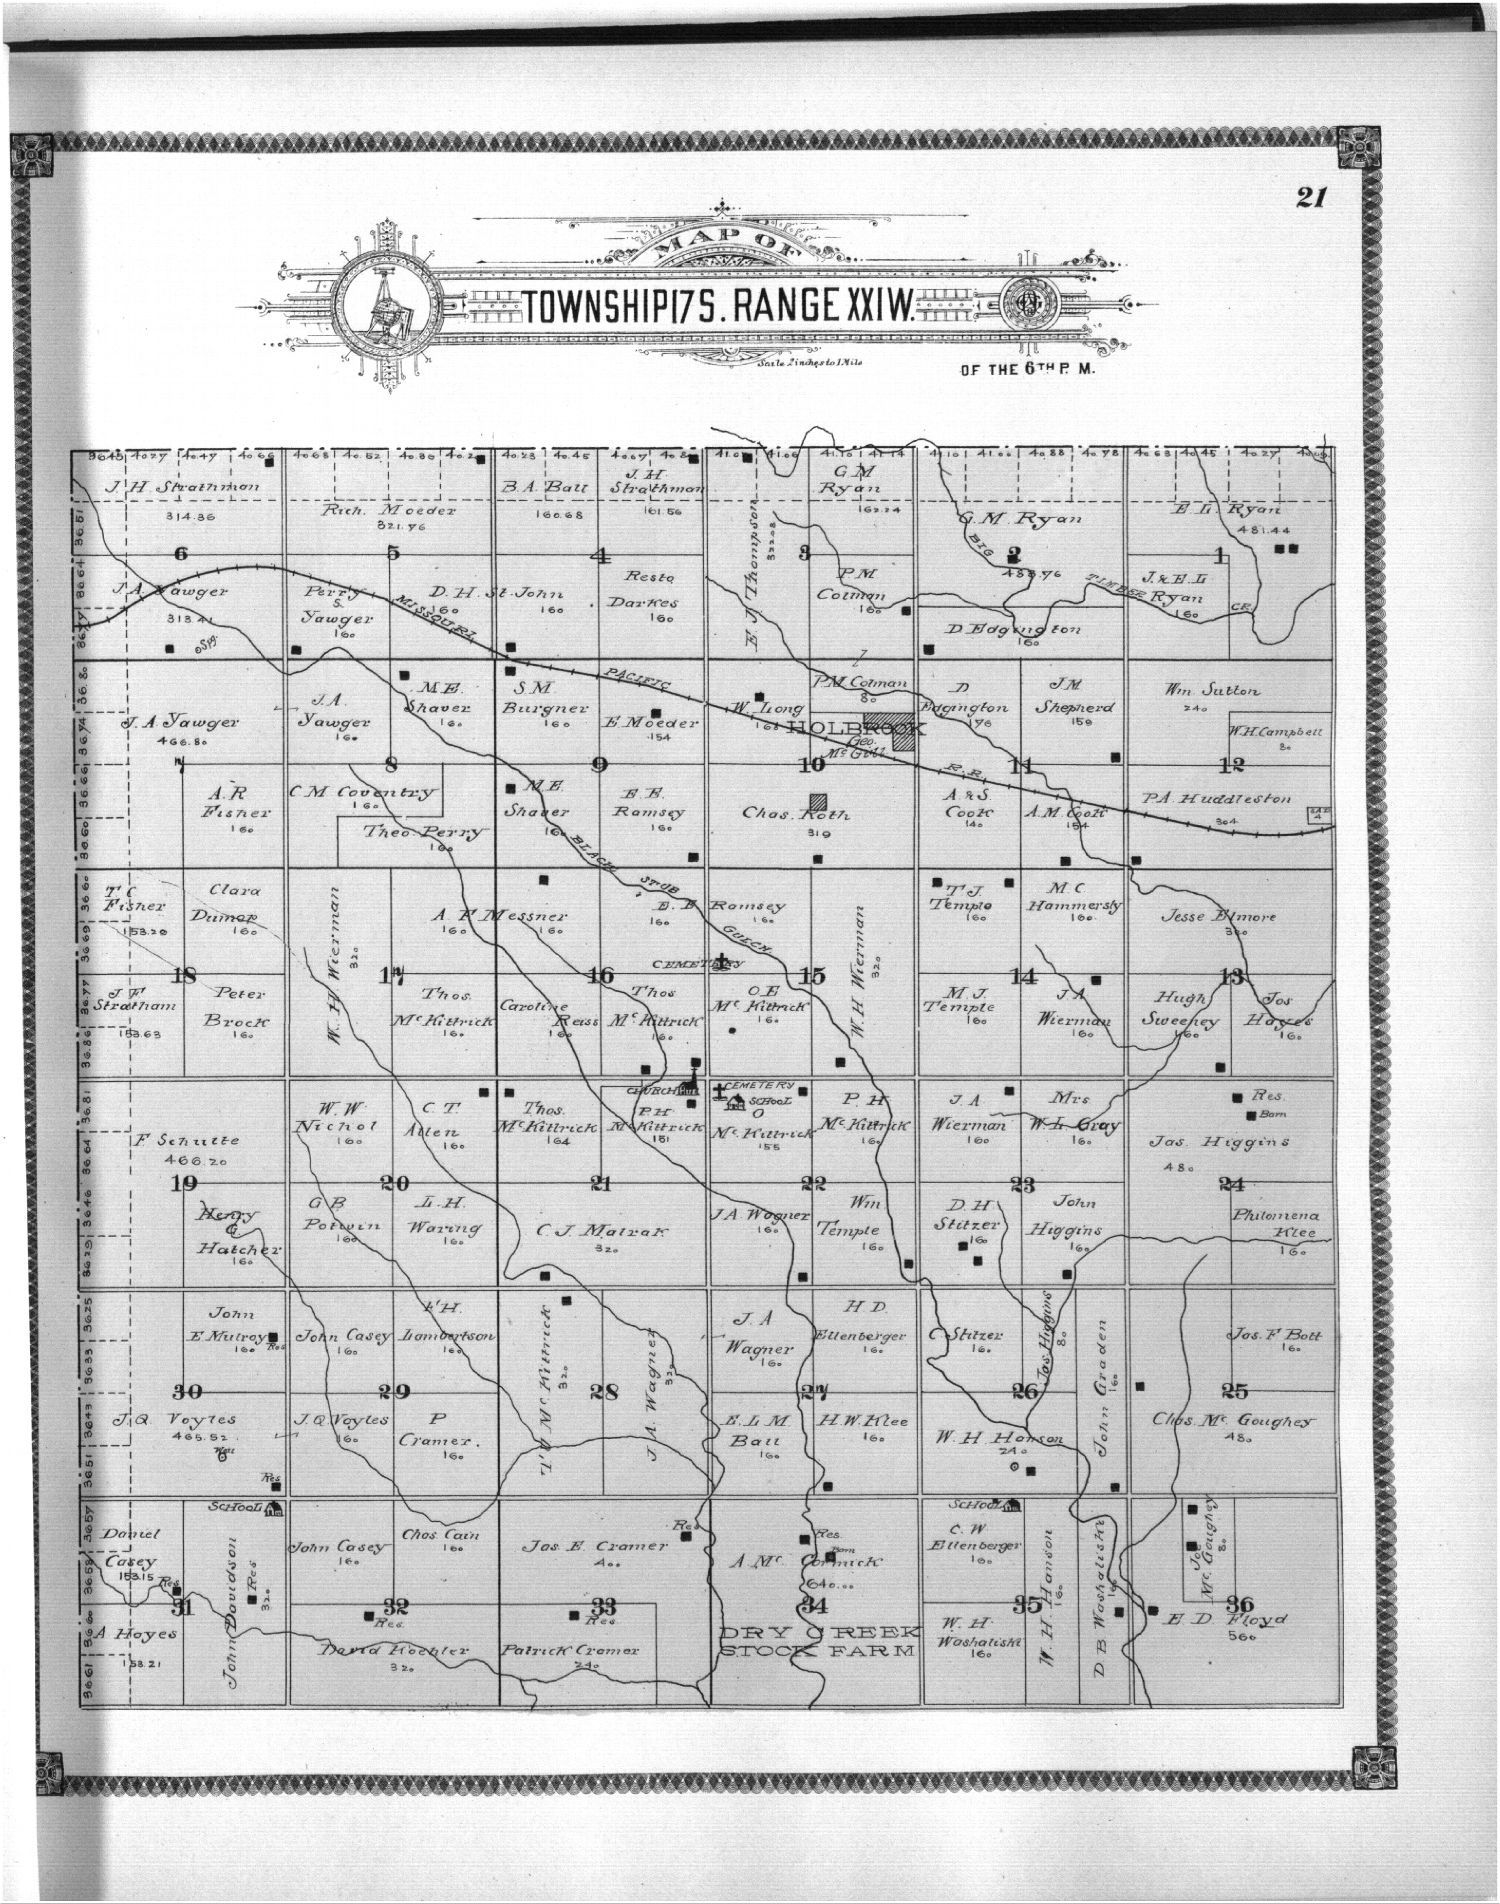 Standard atlas of Ness County, Kansas - 21